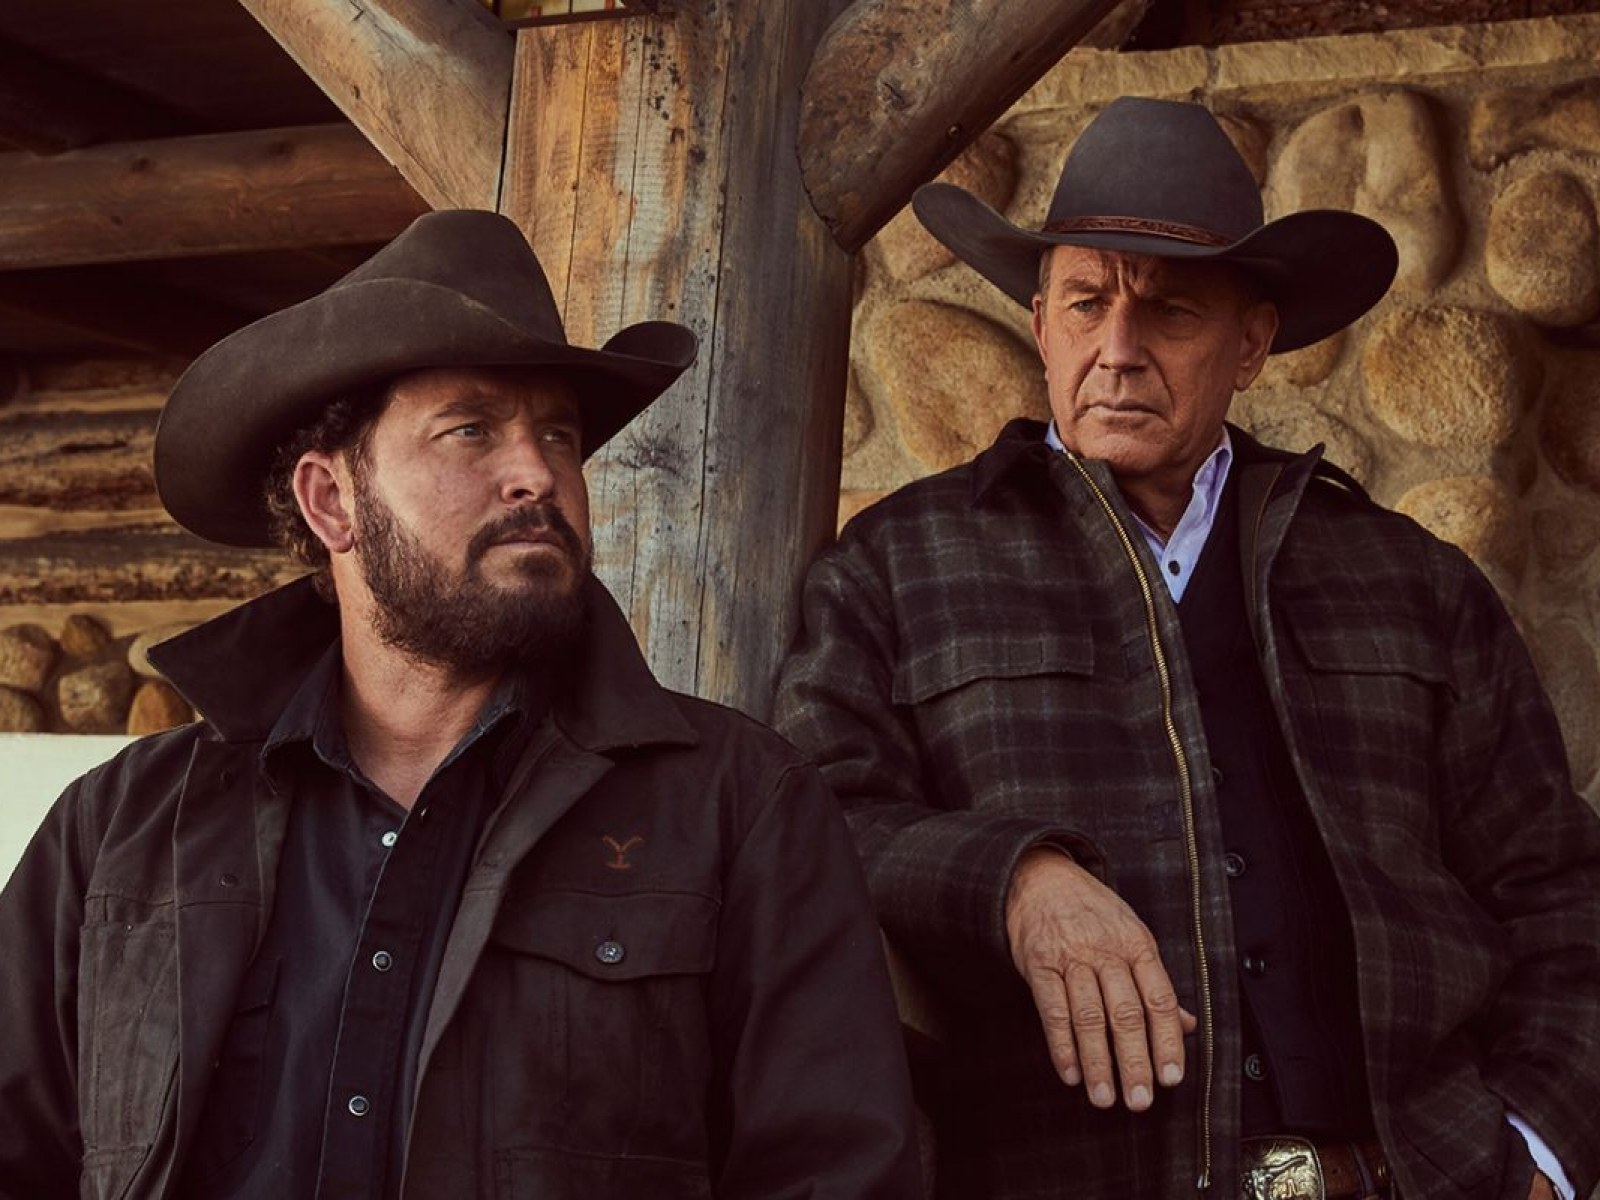 Yellowstone' Season 4: Will There Be Another Season on Paramount?